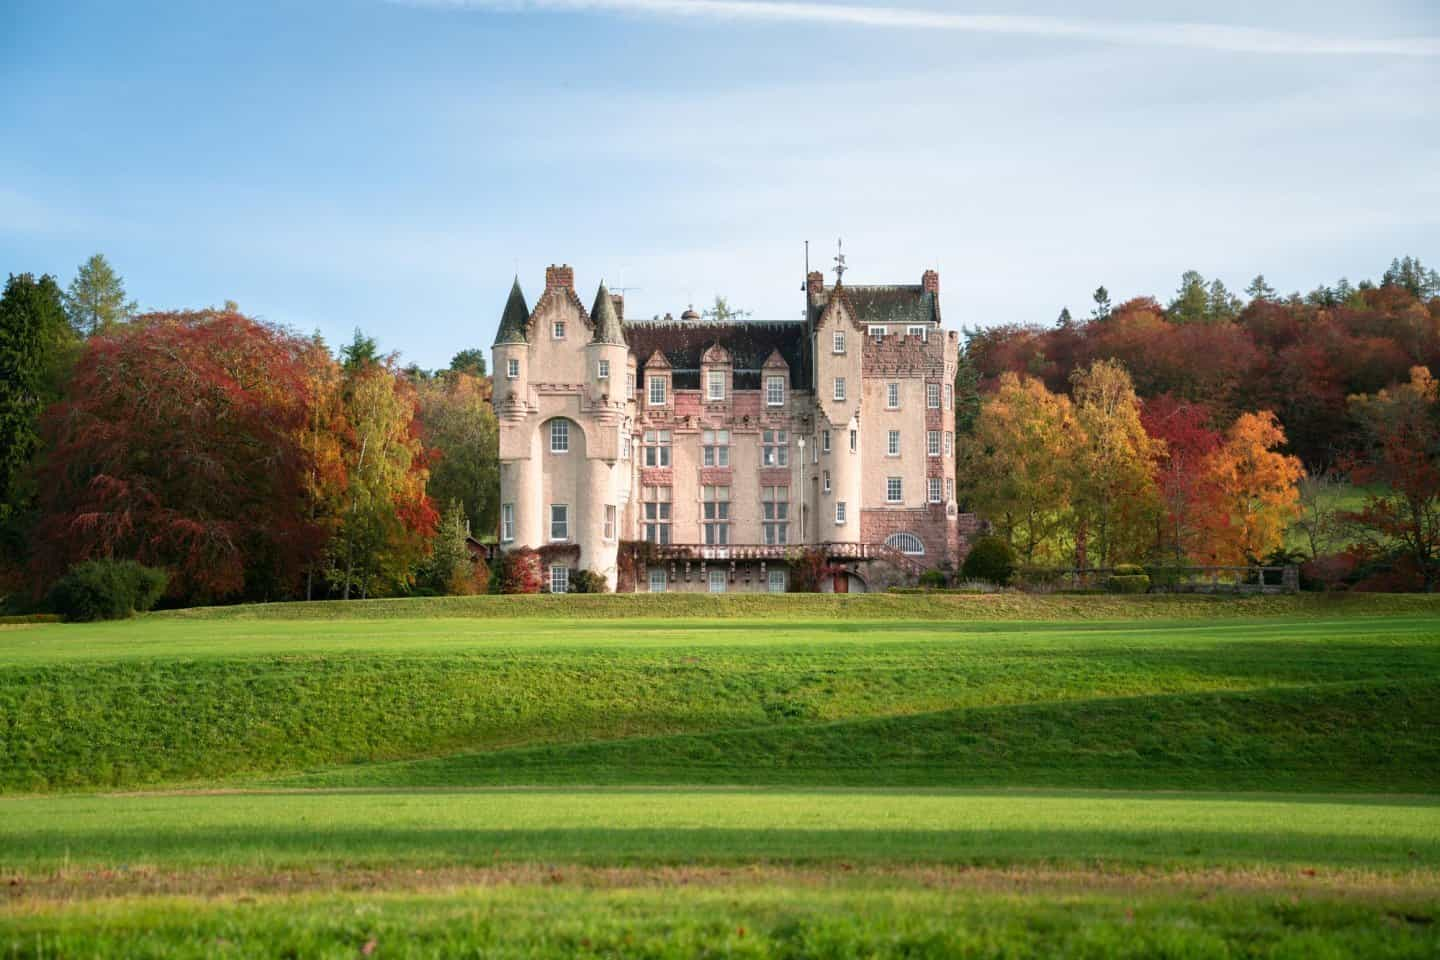 One of the best castles in Scotland; regal Kincardine Castle from the driveway.